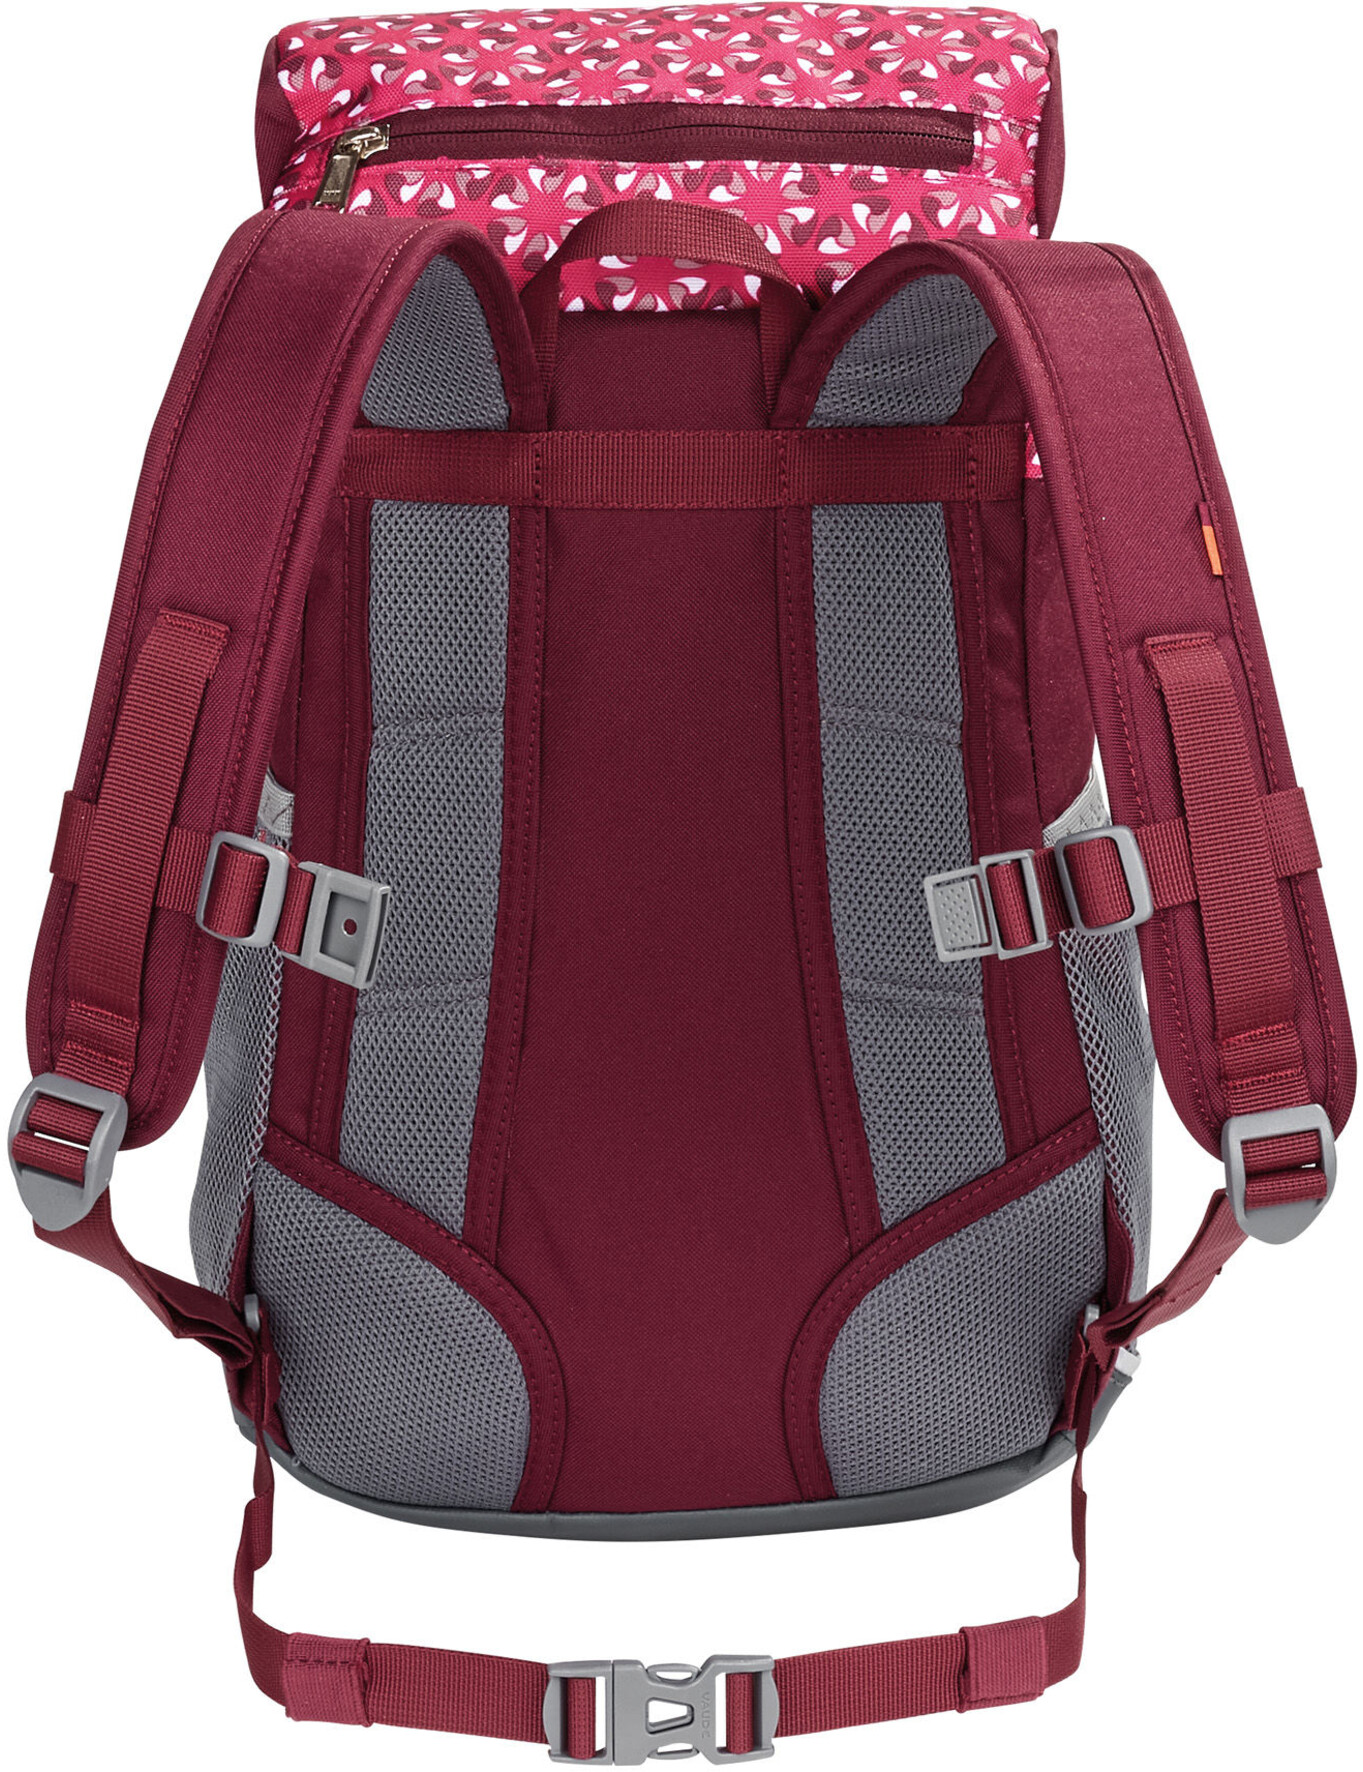 VAUDE Puck 10 Backpack Children pink colourful at Addnature.co.uk 0a067652212b2